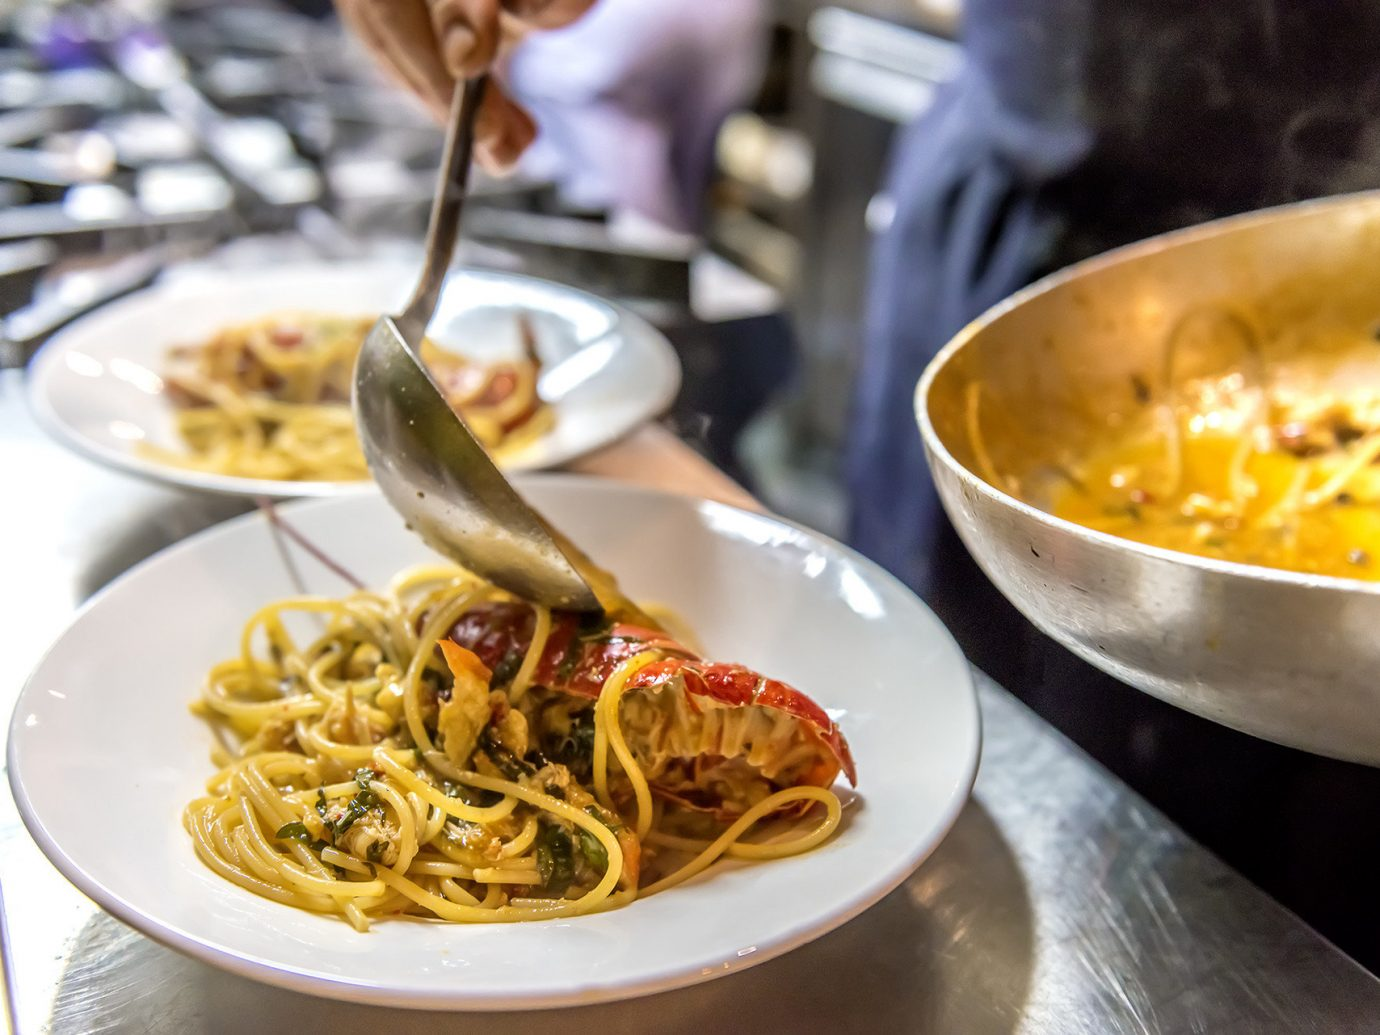 chef Eat food Food + Drink homey Kitchen pasta pouring Rustic Trip Ideas table plate dish cuisine spaghetti meal supper italian food restaurant produce european food vegetable